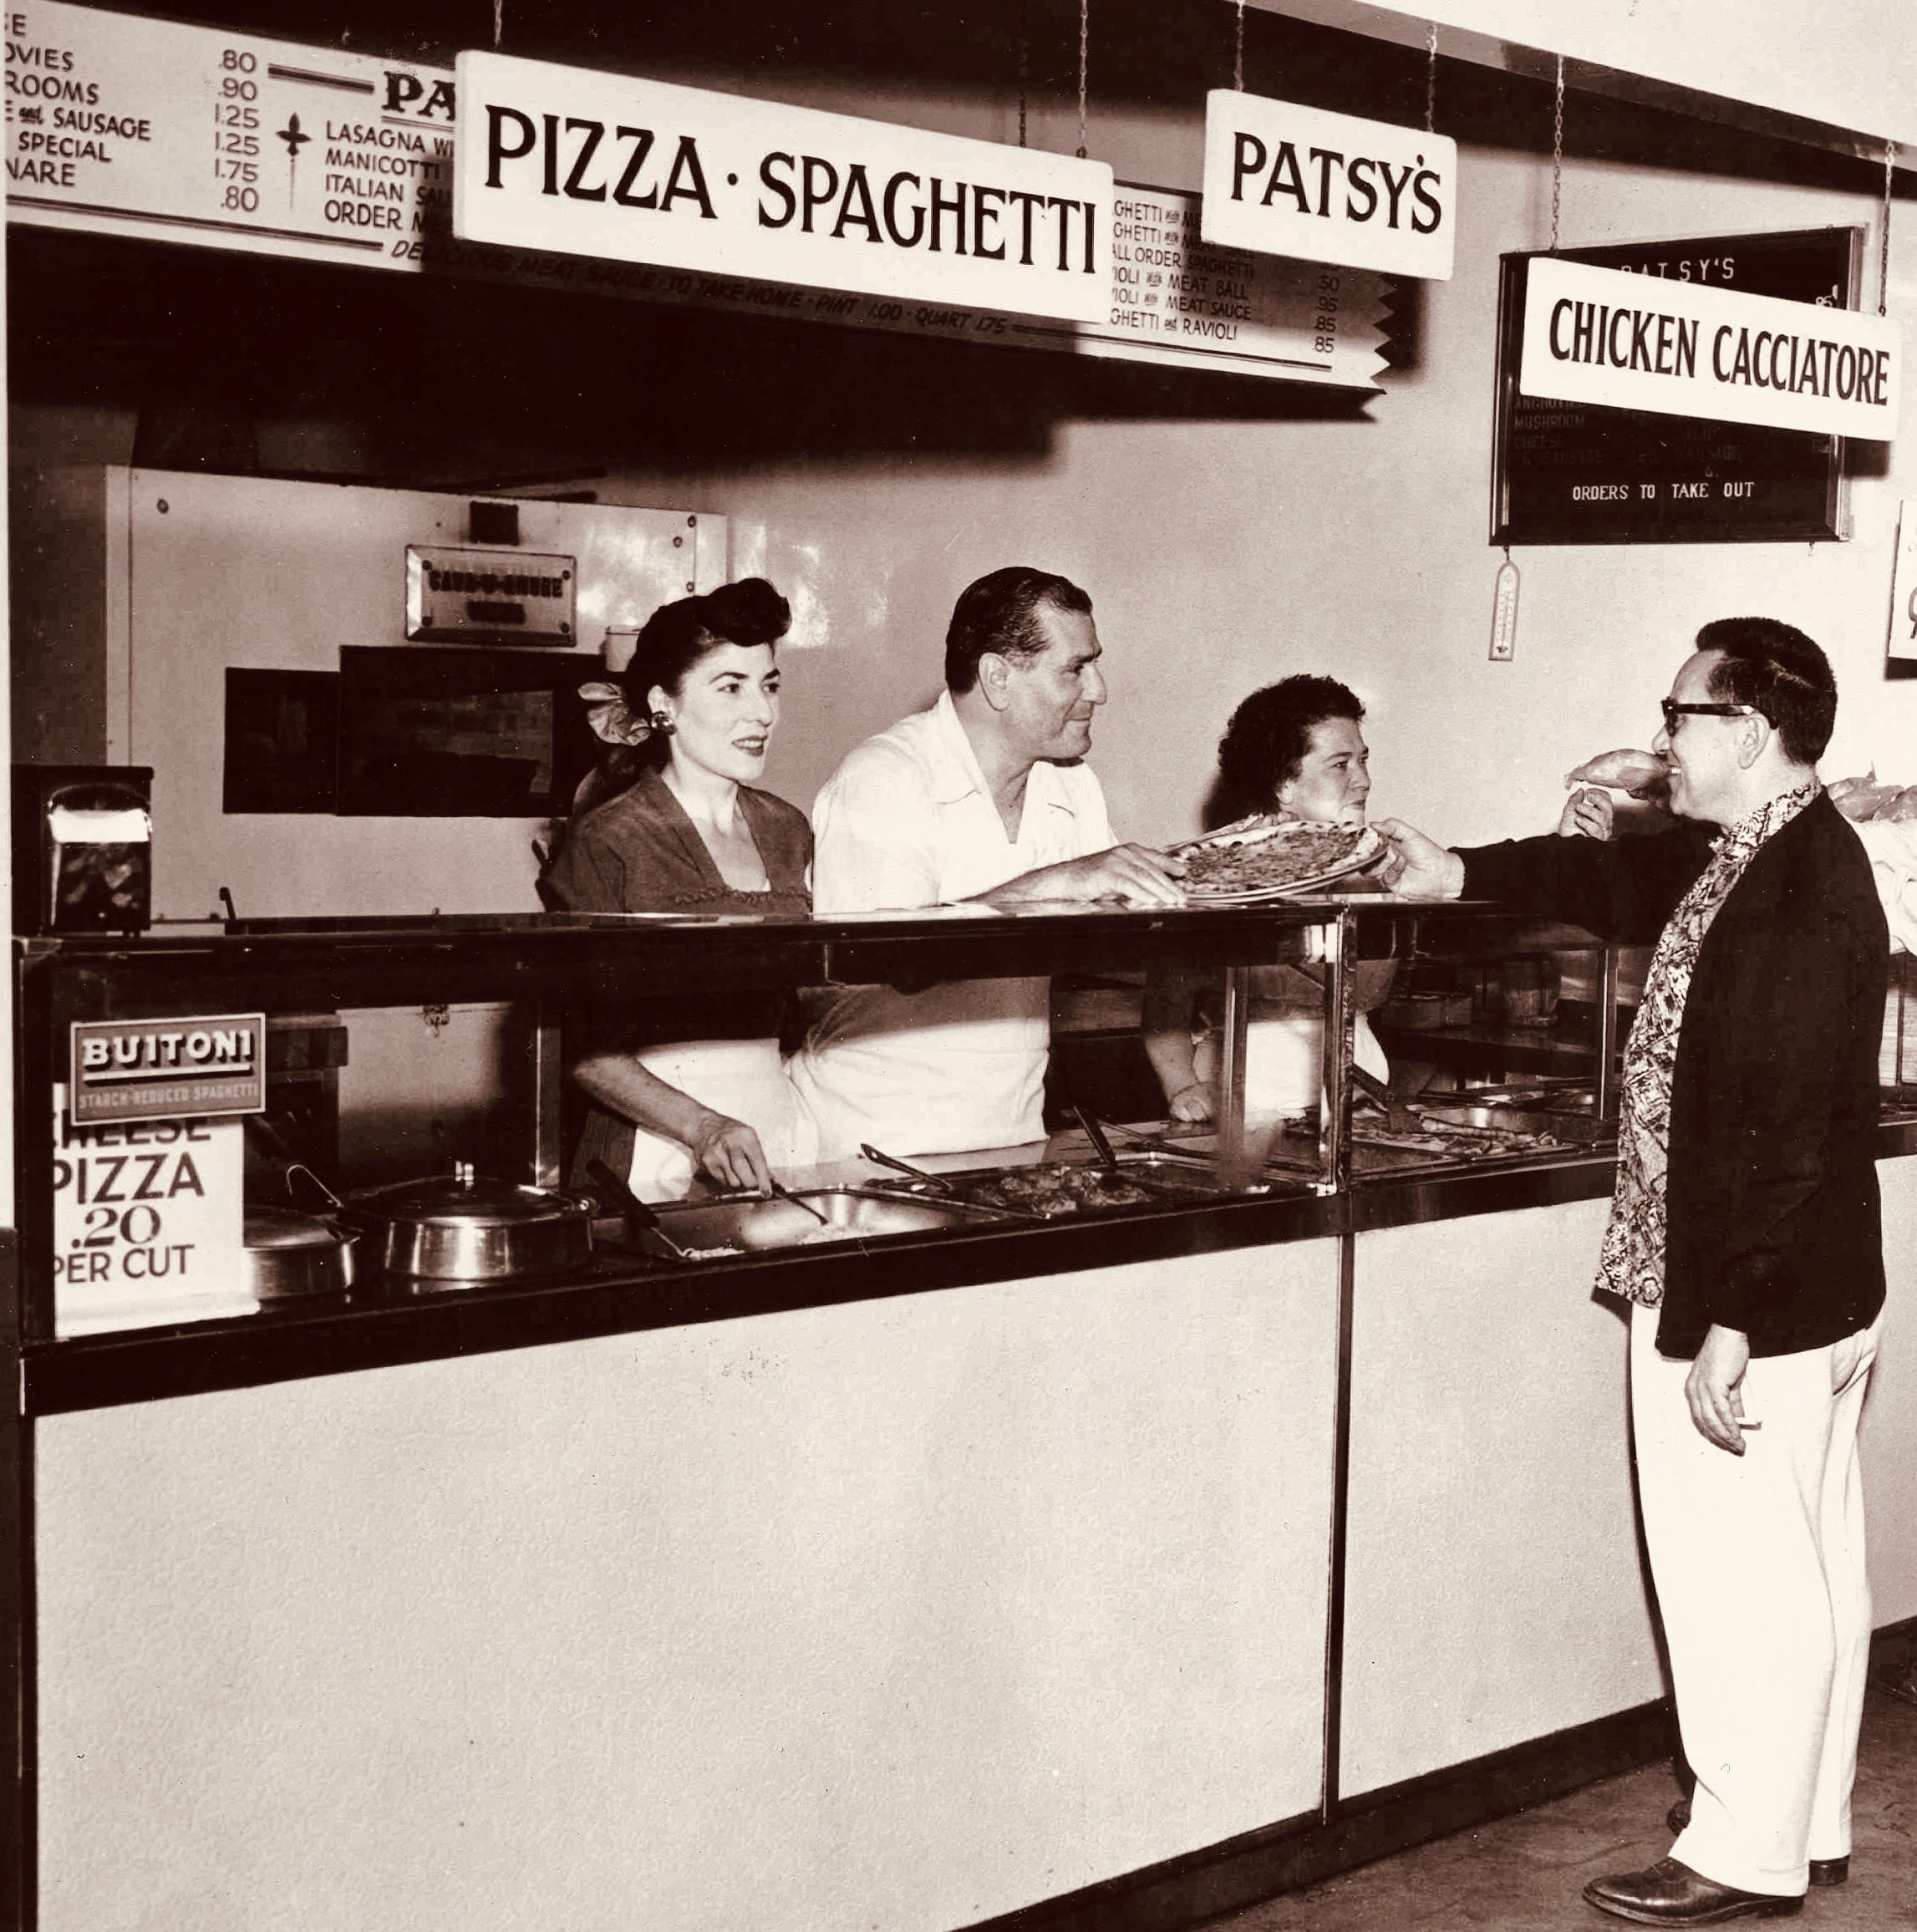 In 1949 when Patsy (Pasquale) opened the pizzeria, a cut of pizza (otherwise known as a slice) was .20 cents.